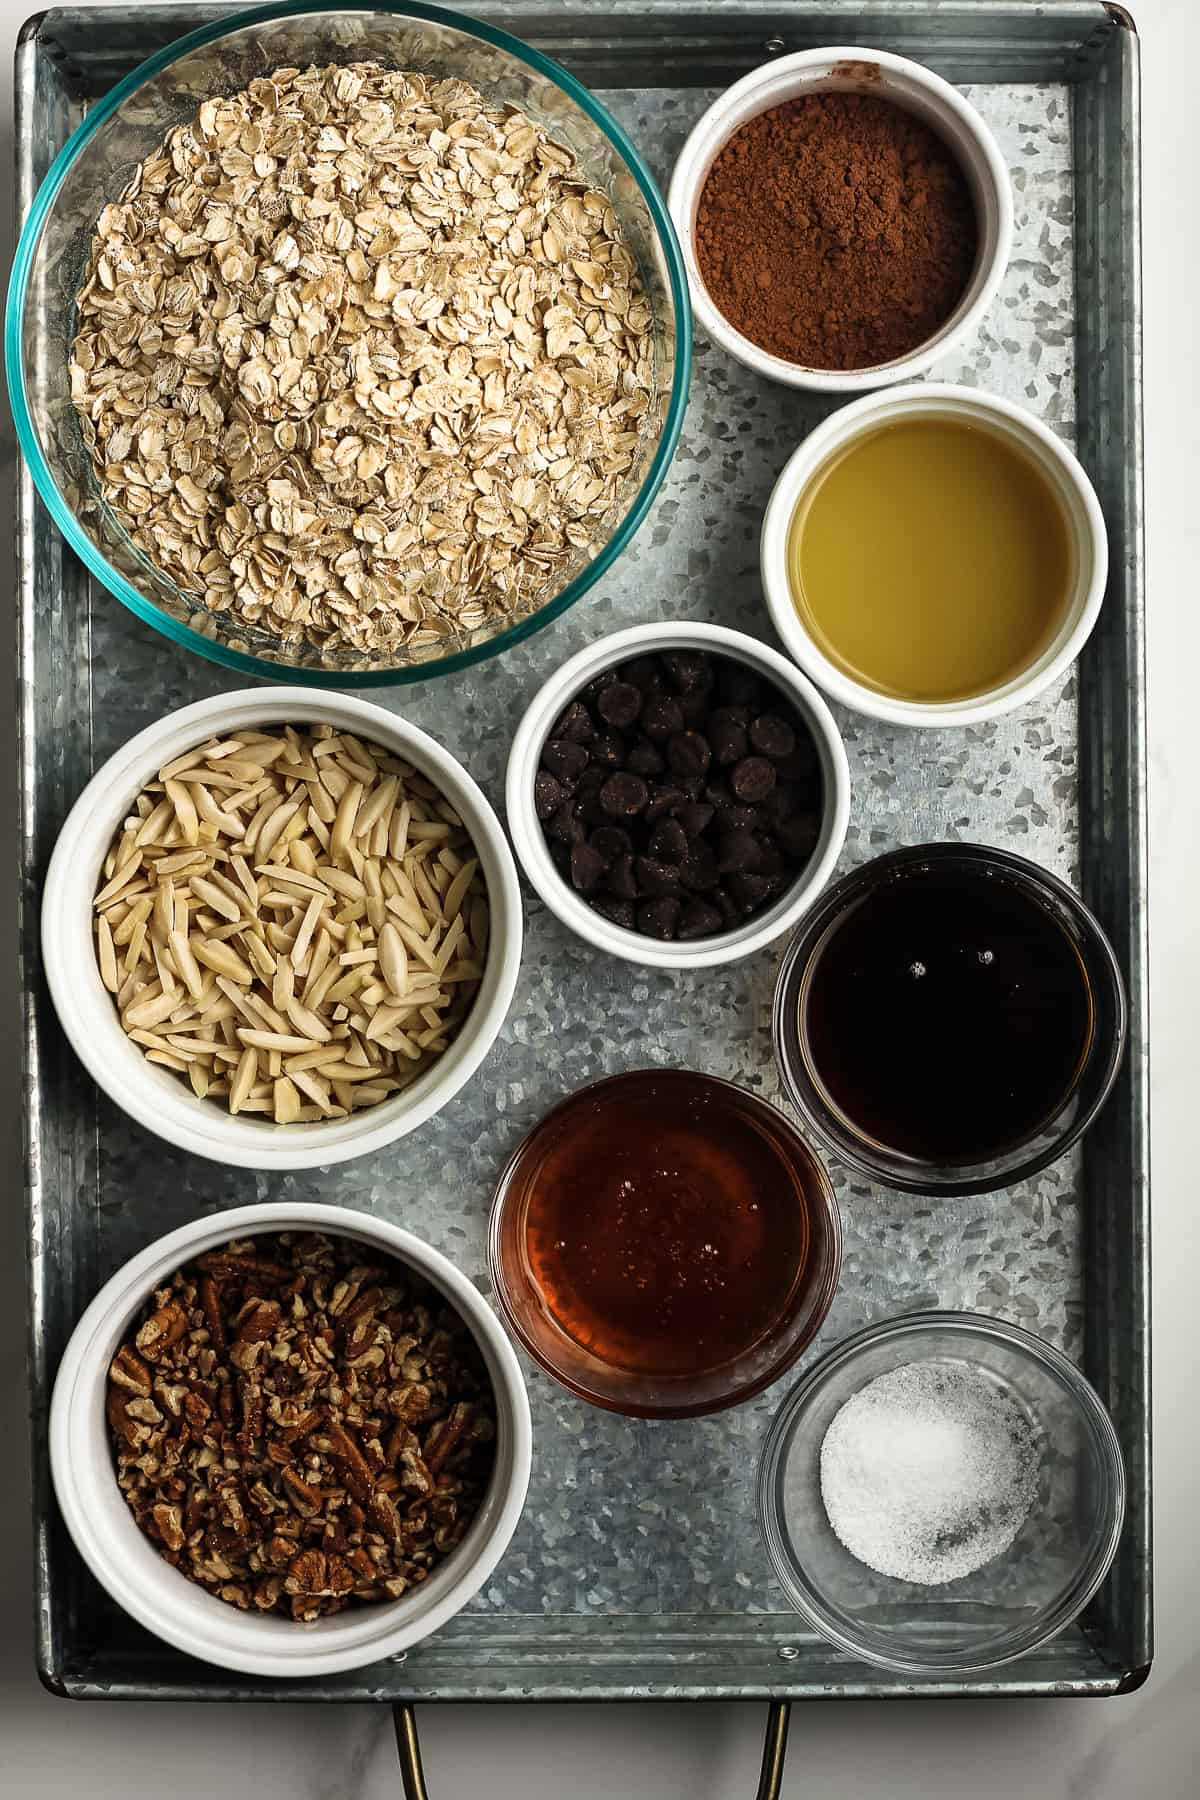 A gray tray of ingredients for chocolate granola.